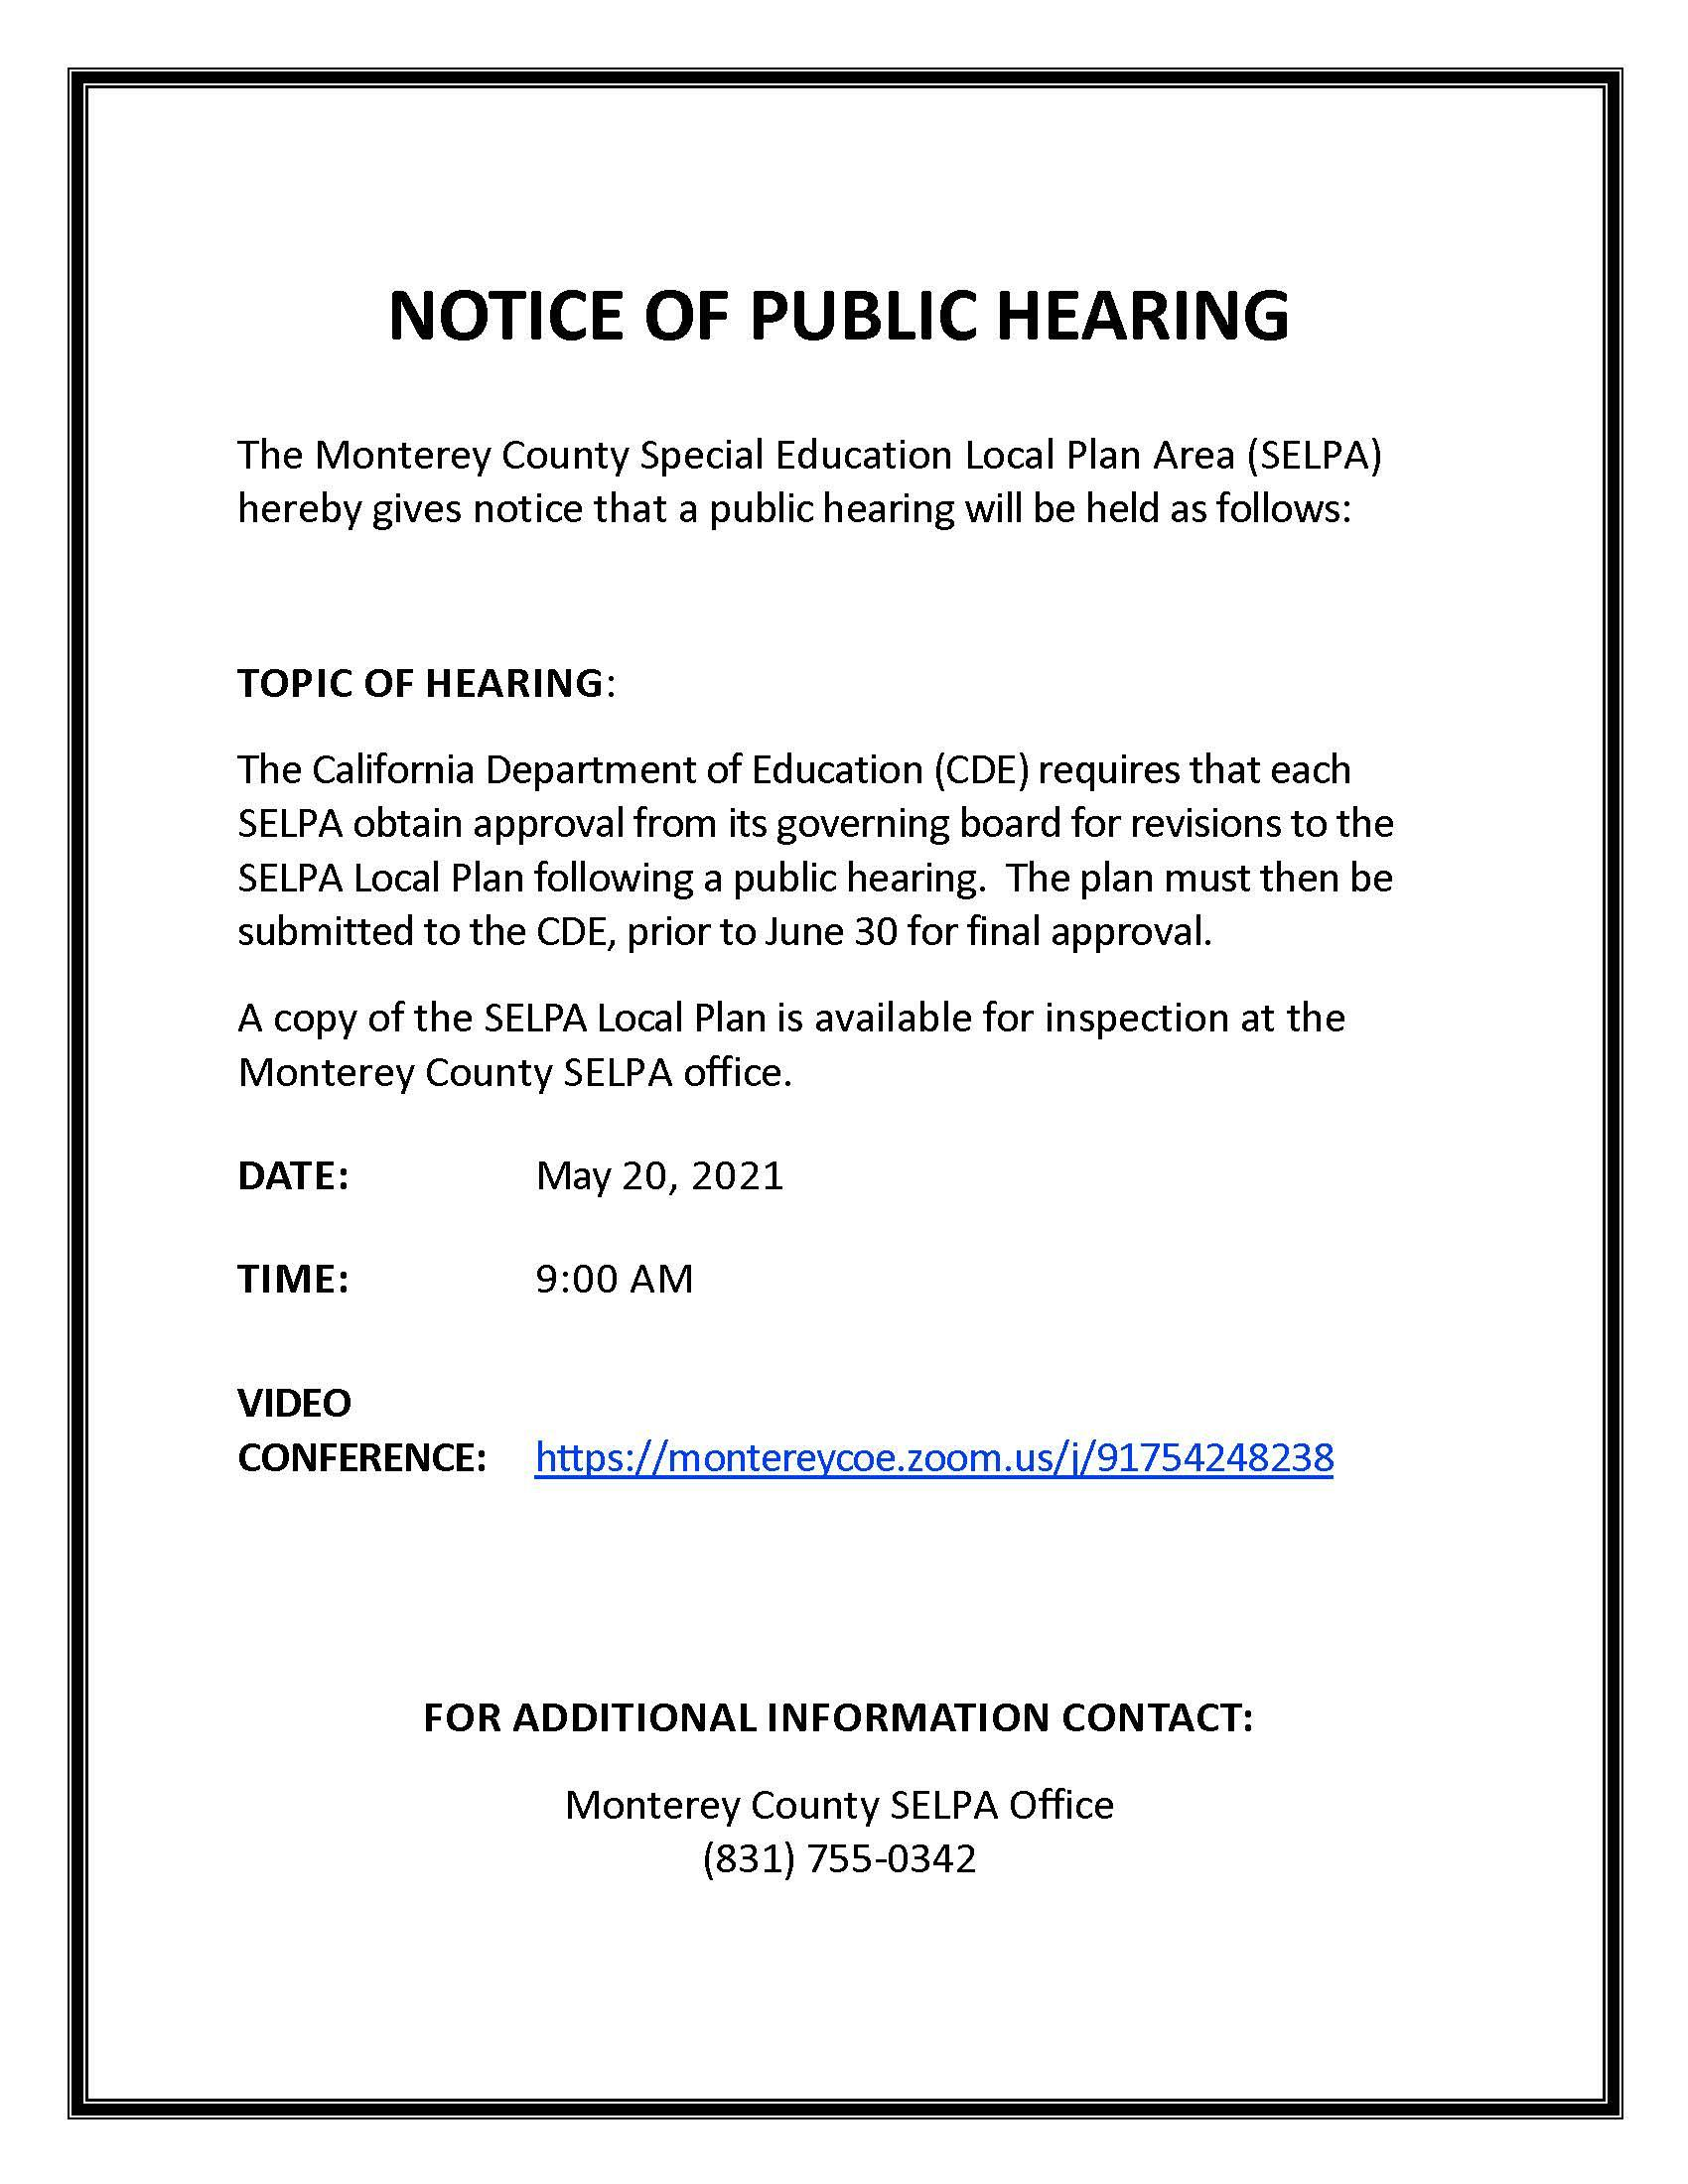 English SELPA Public Hearing Flyer